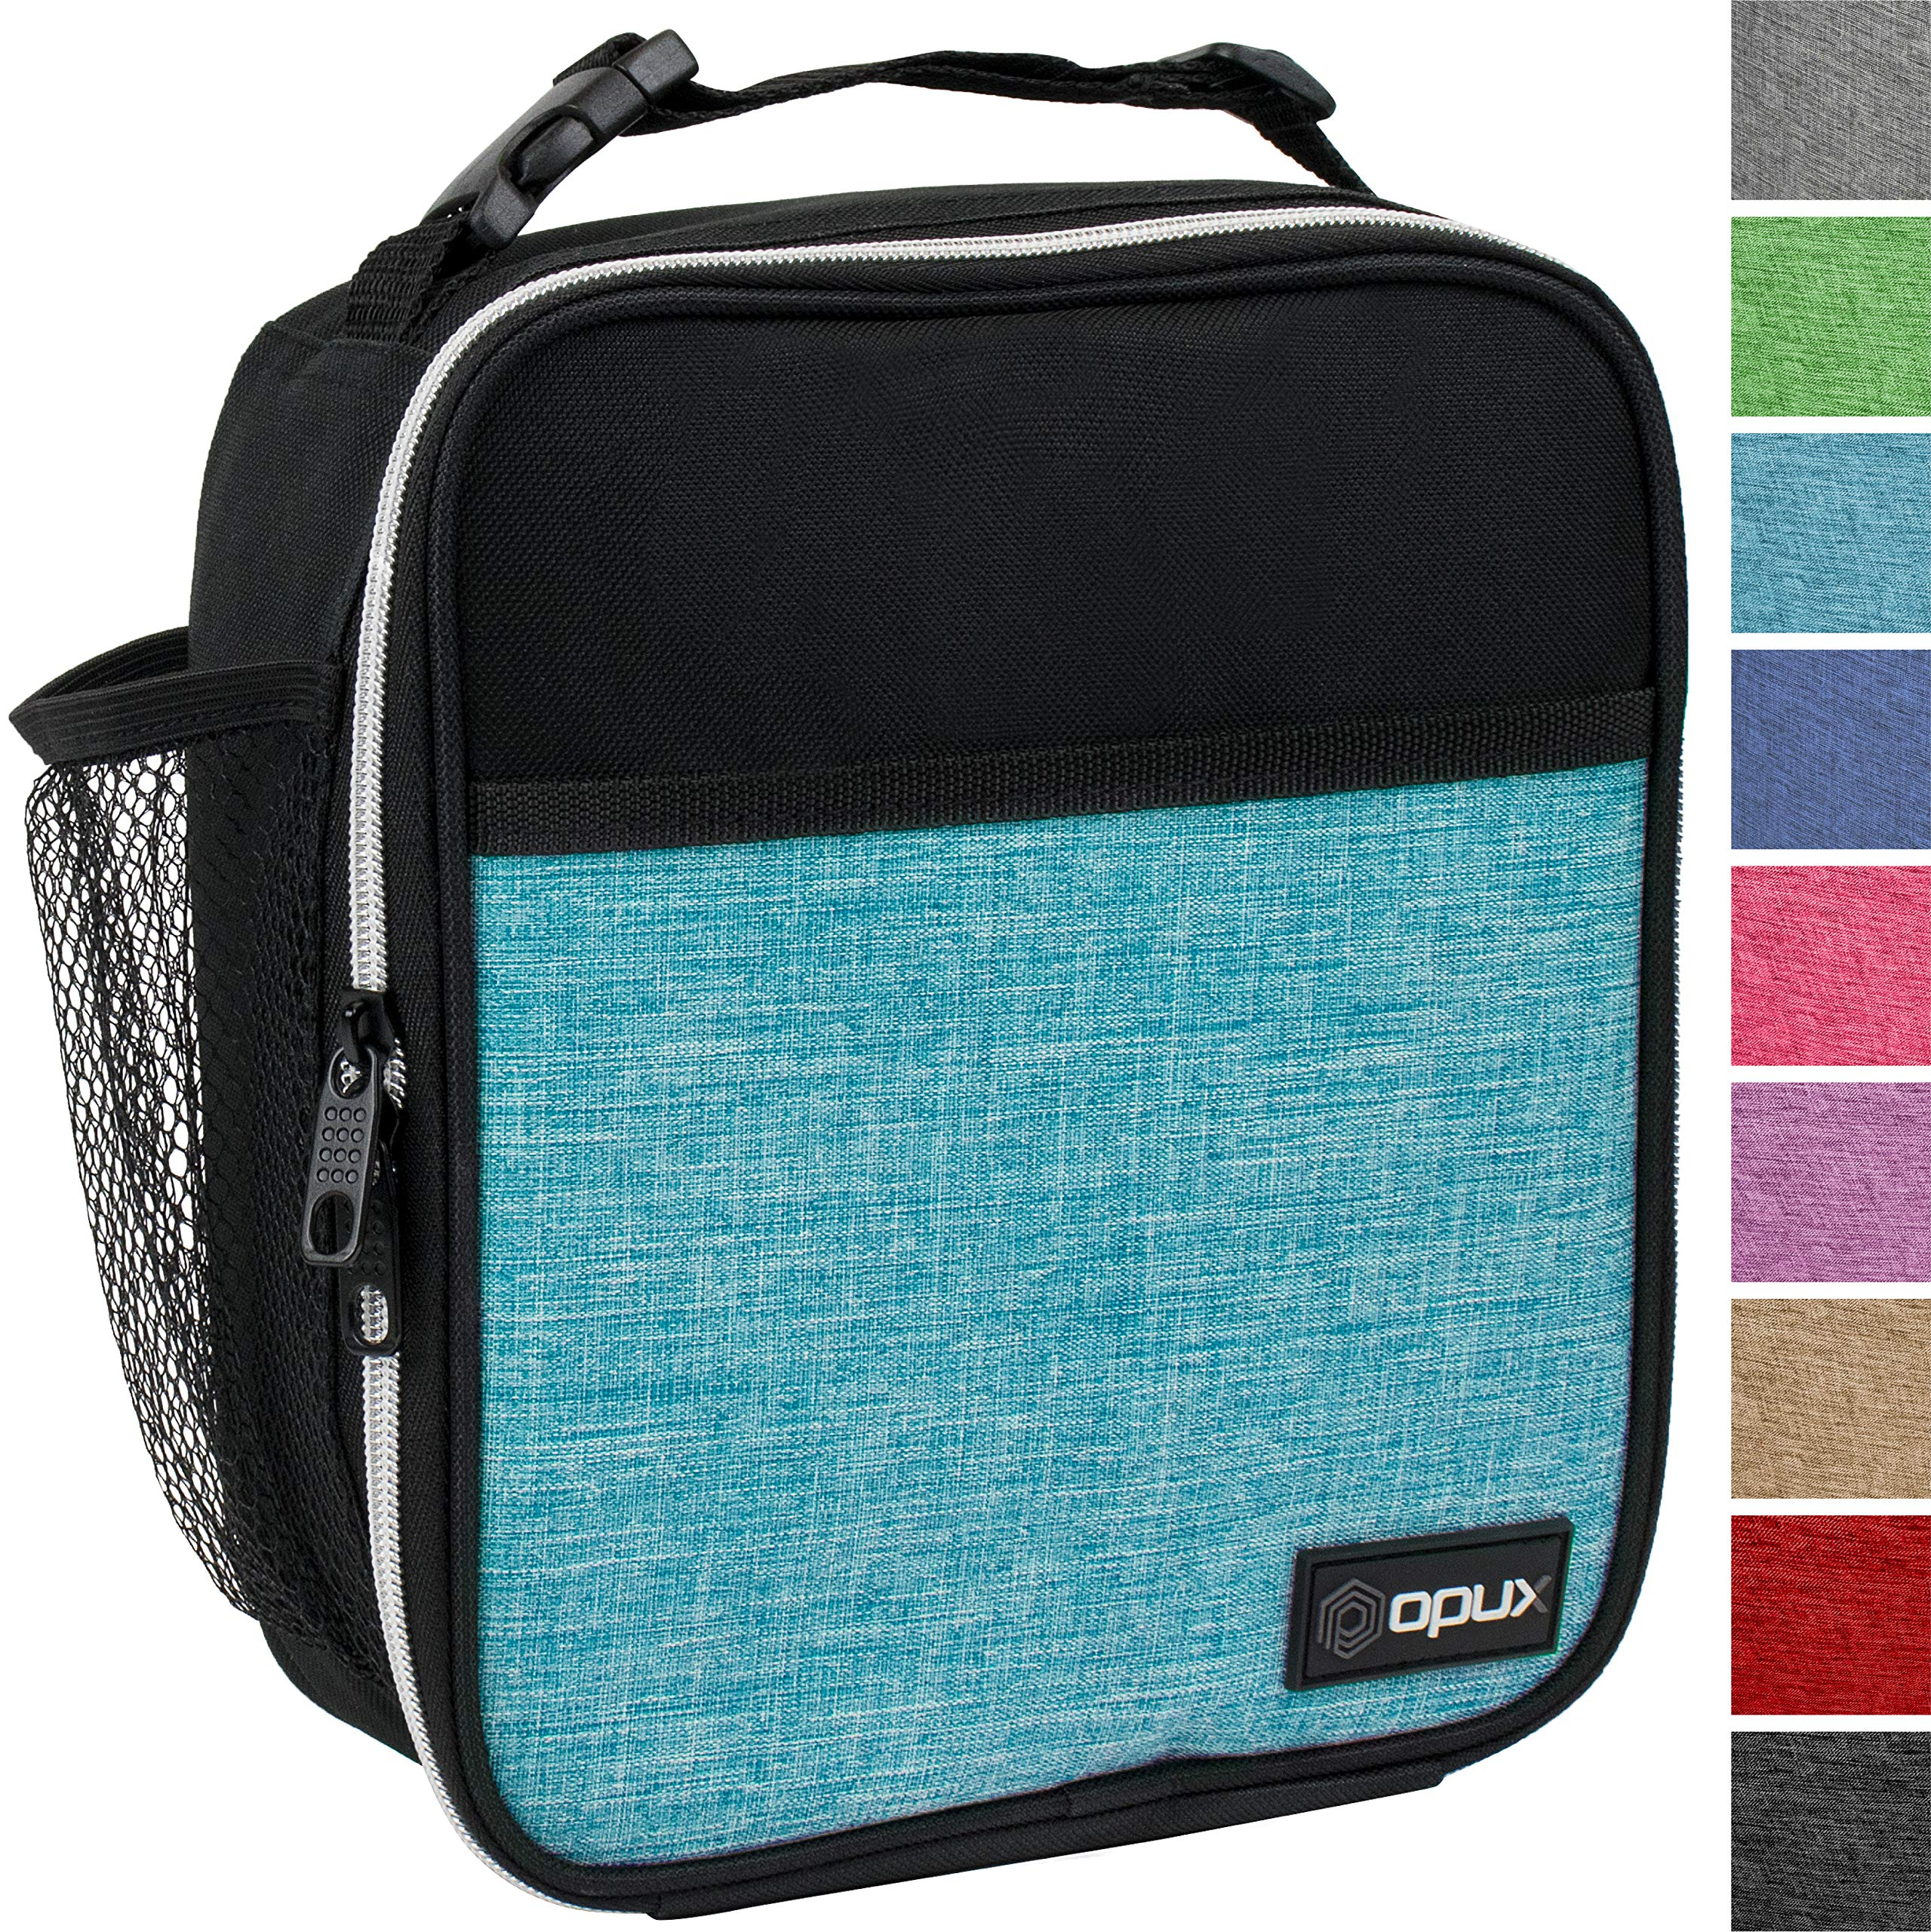 OPUX Premium Insulated Lunch Box | Soft Leakproof School Lunch Bag for Kids, Boys, Girls | Durable Reusable Work Lunch Pail Cooler for Adult Men, Women, Office - Fits 6 Cans (Turquoise) by OPUX